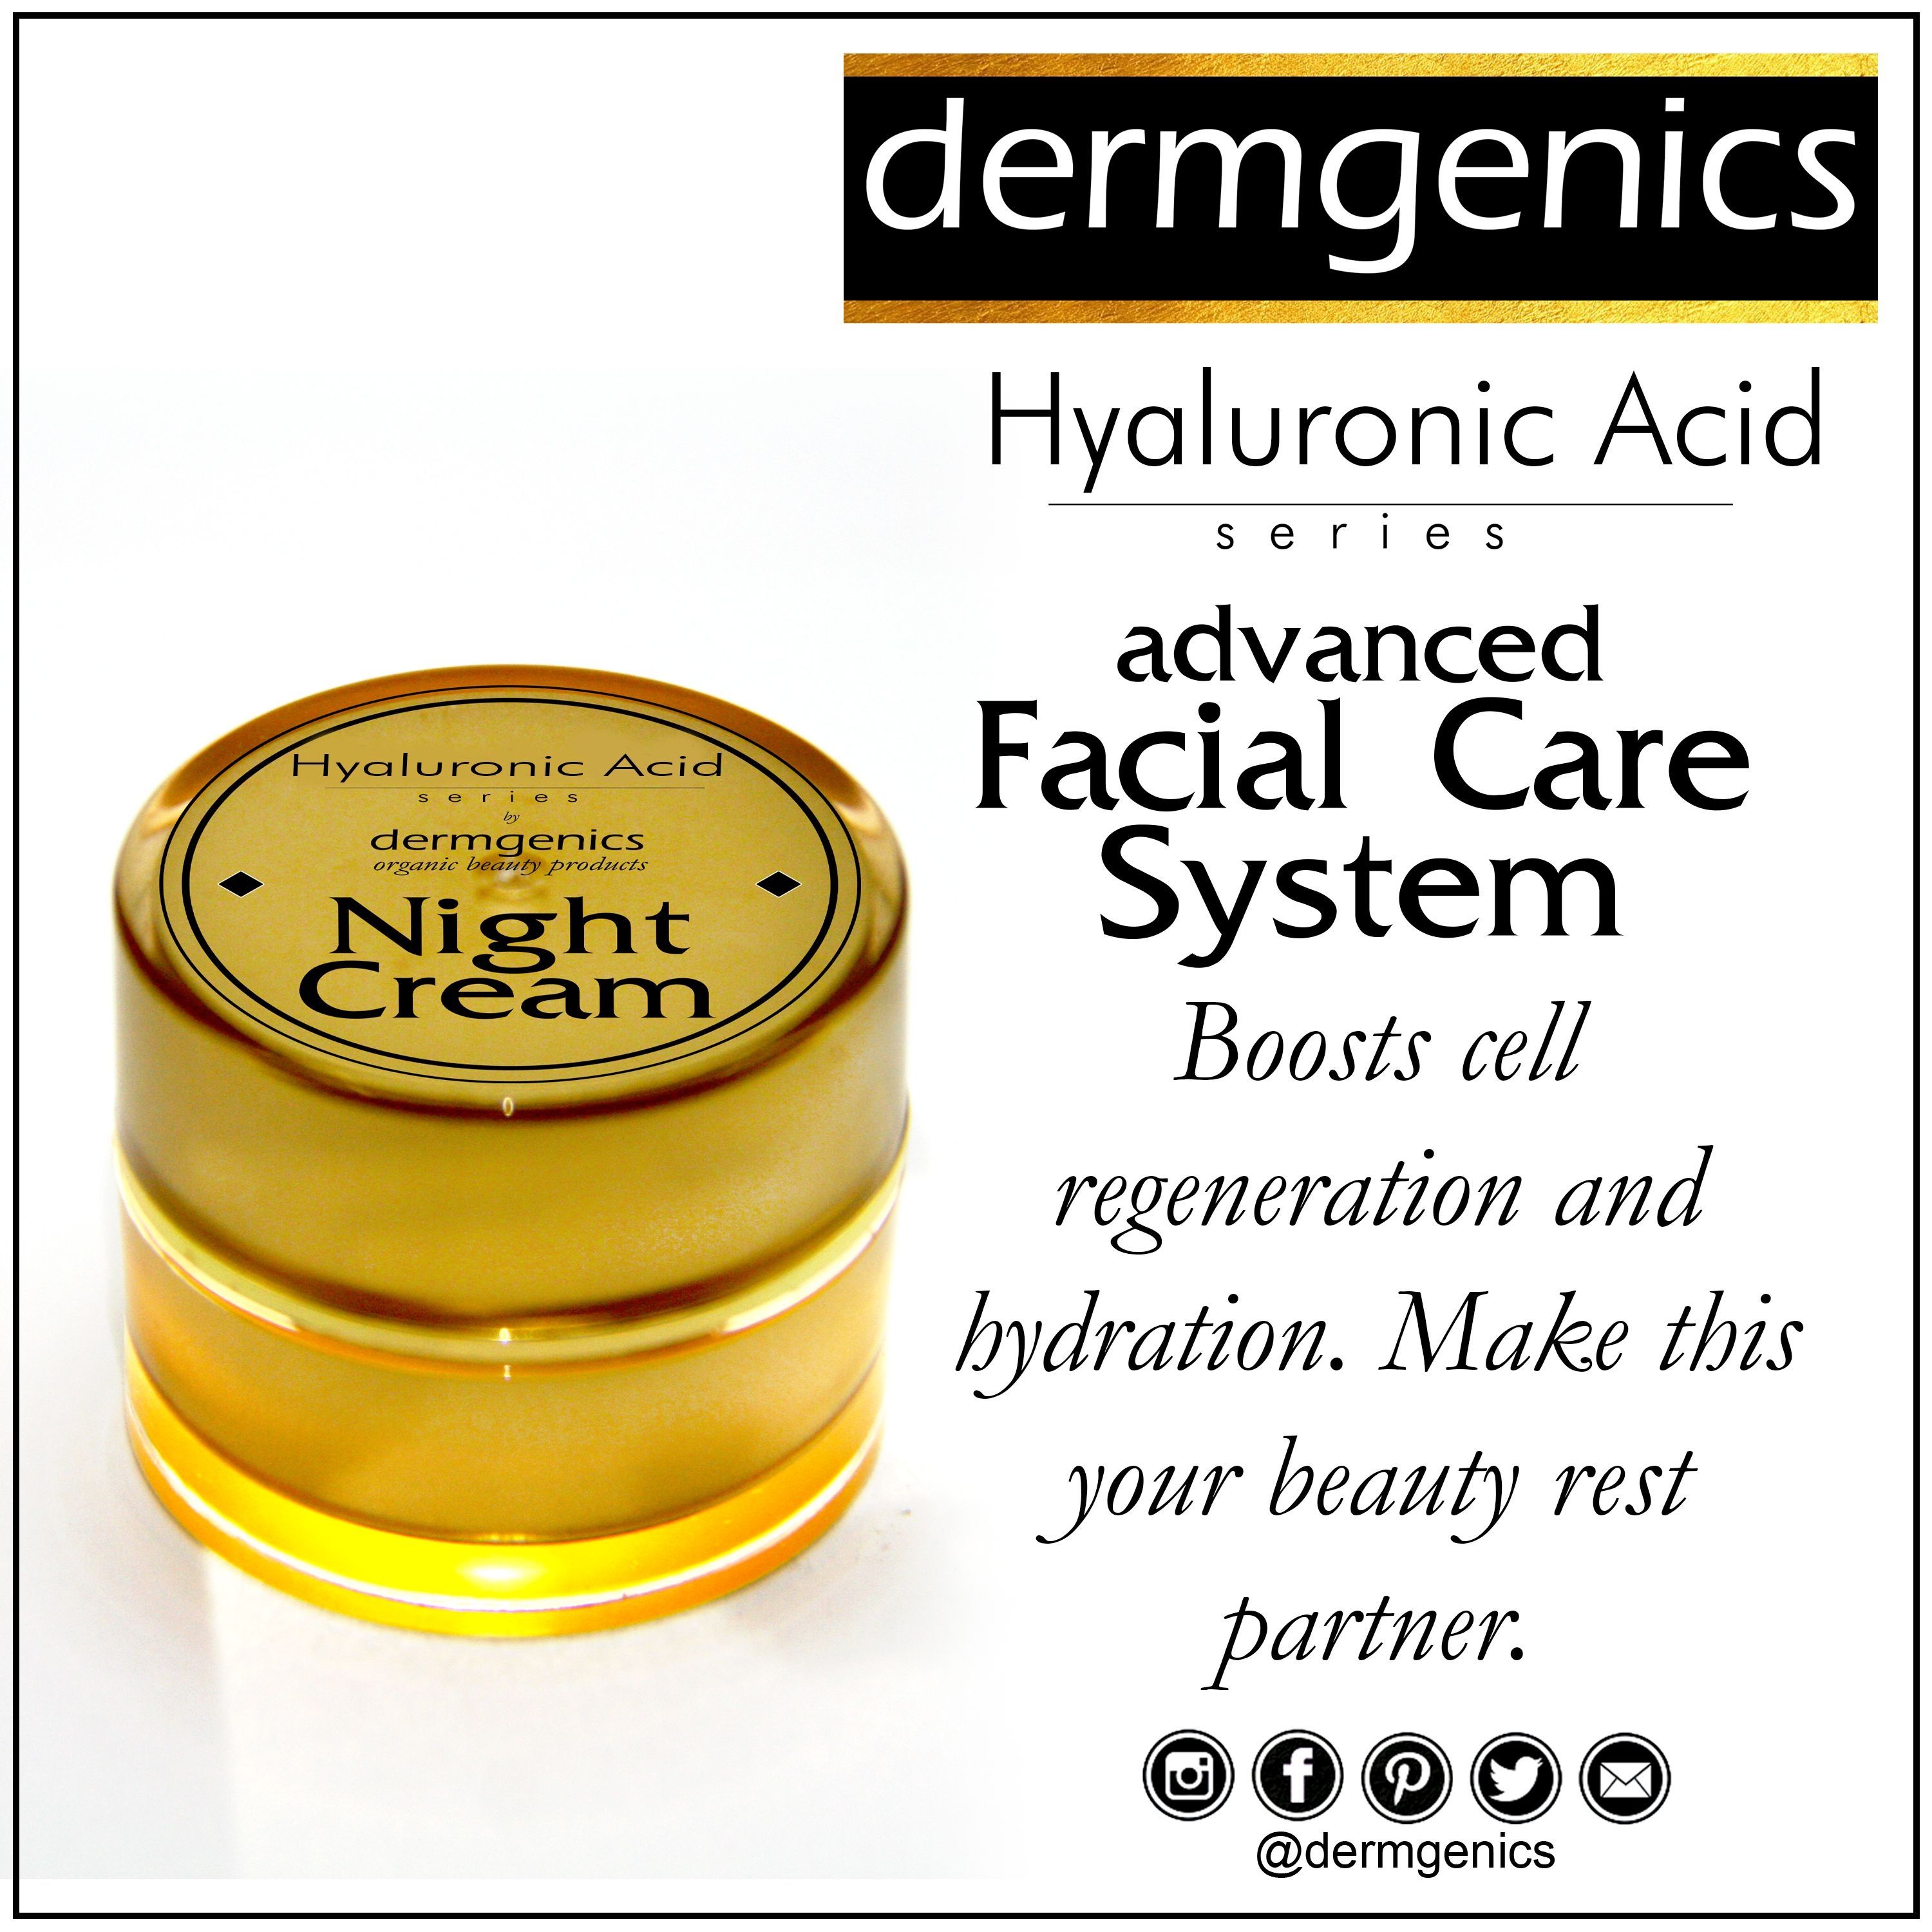 Dermgenics organic beauty products hyaluronic acid series night